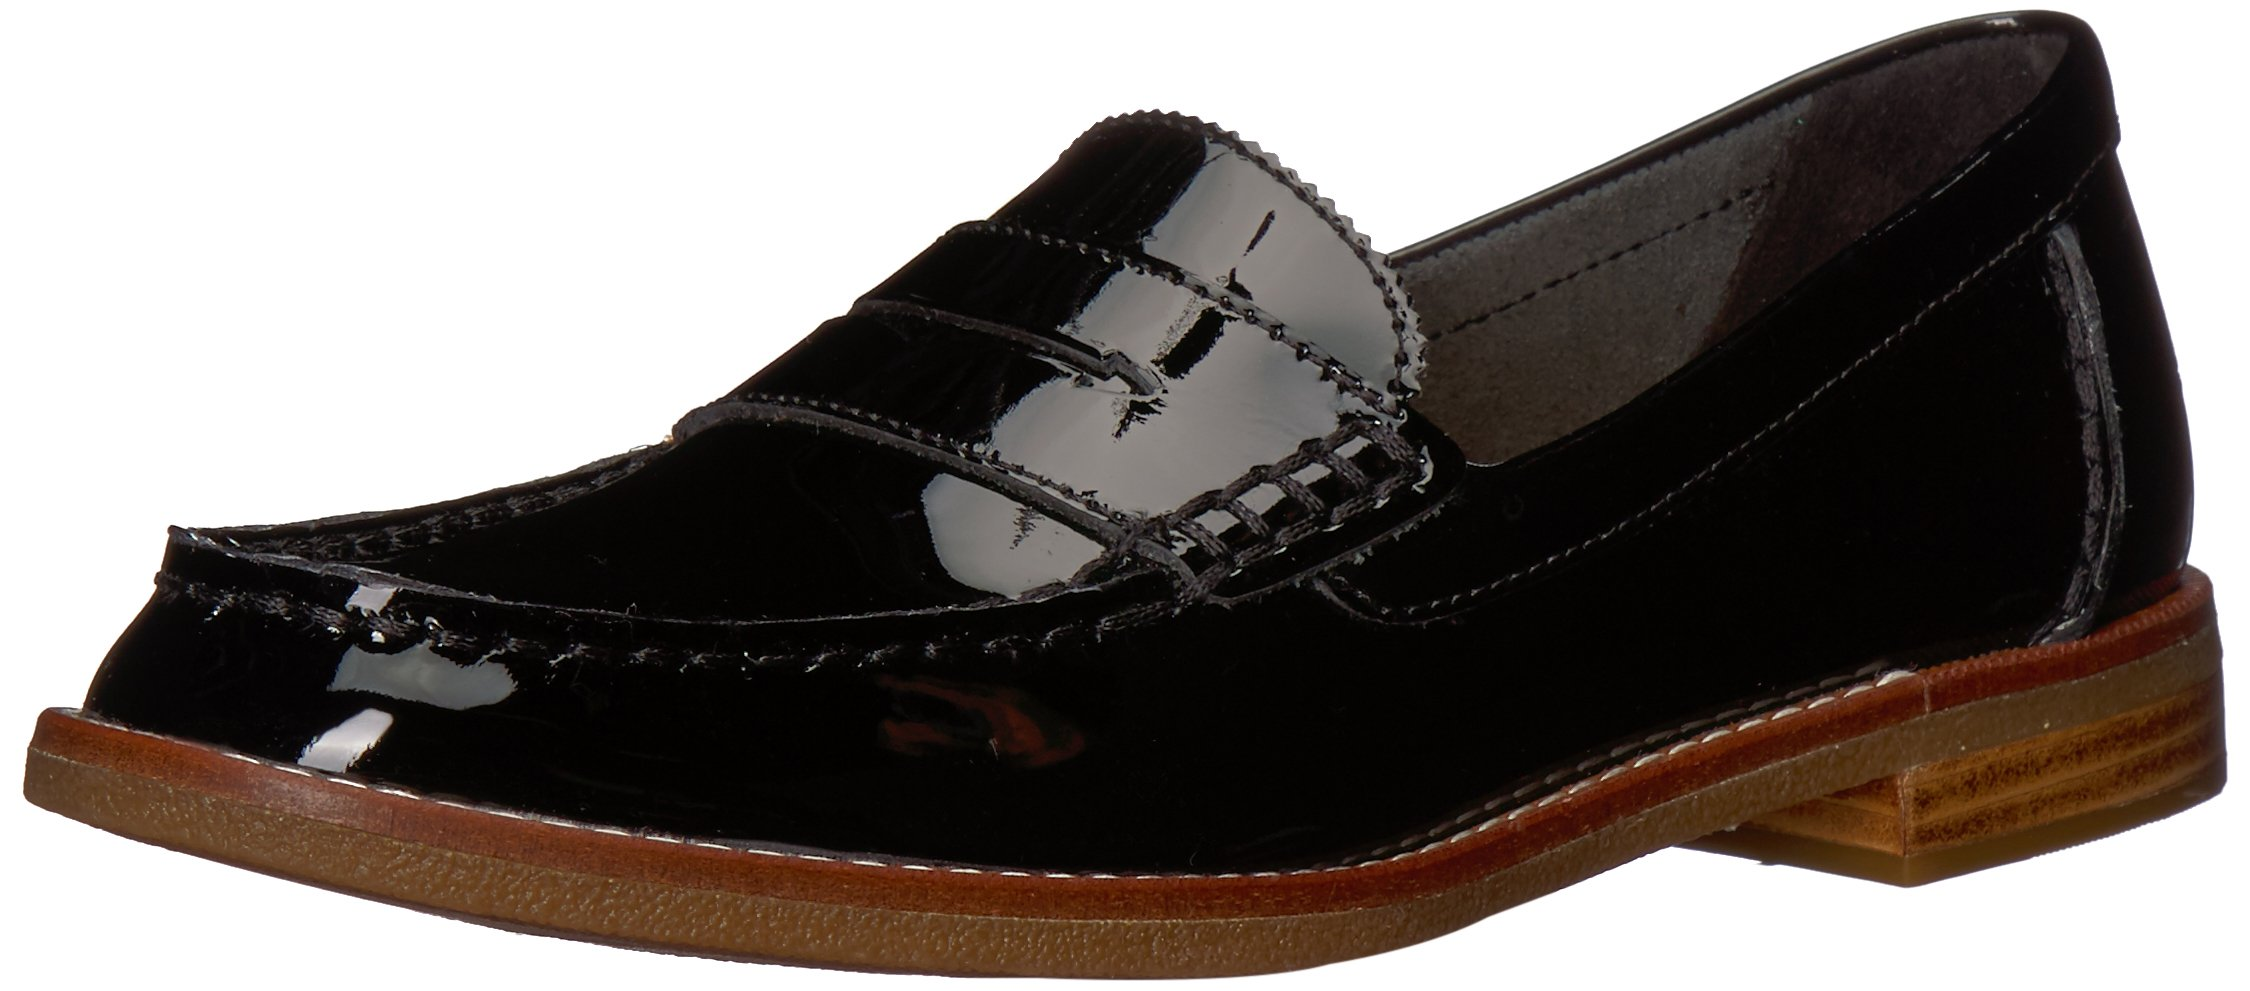 Sperry Top-Sider Women's Seaport Penny Loafer, Black Patent, 8 M US